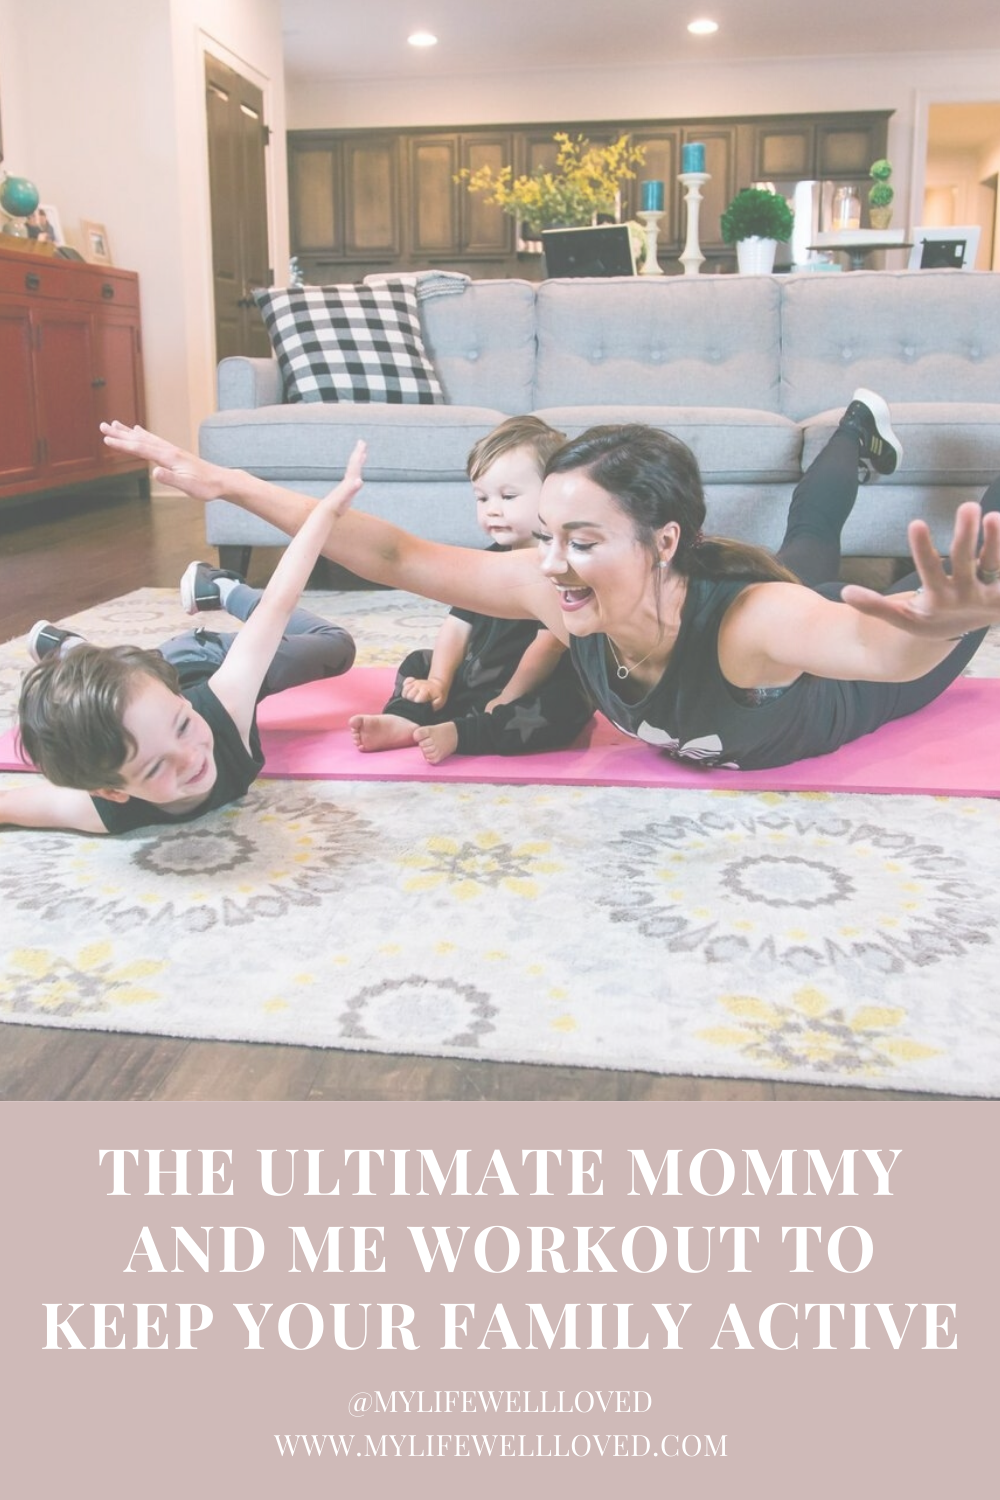 Mommy And Me Workout by Alabama Mommy + Fitness blogger, Heather Brown // My Life Well Loved